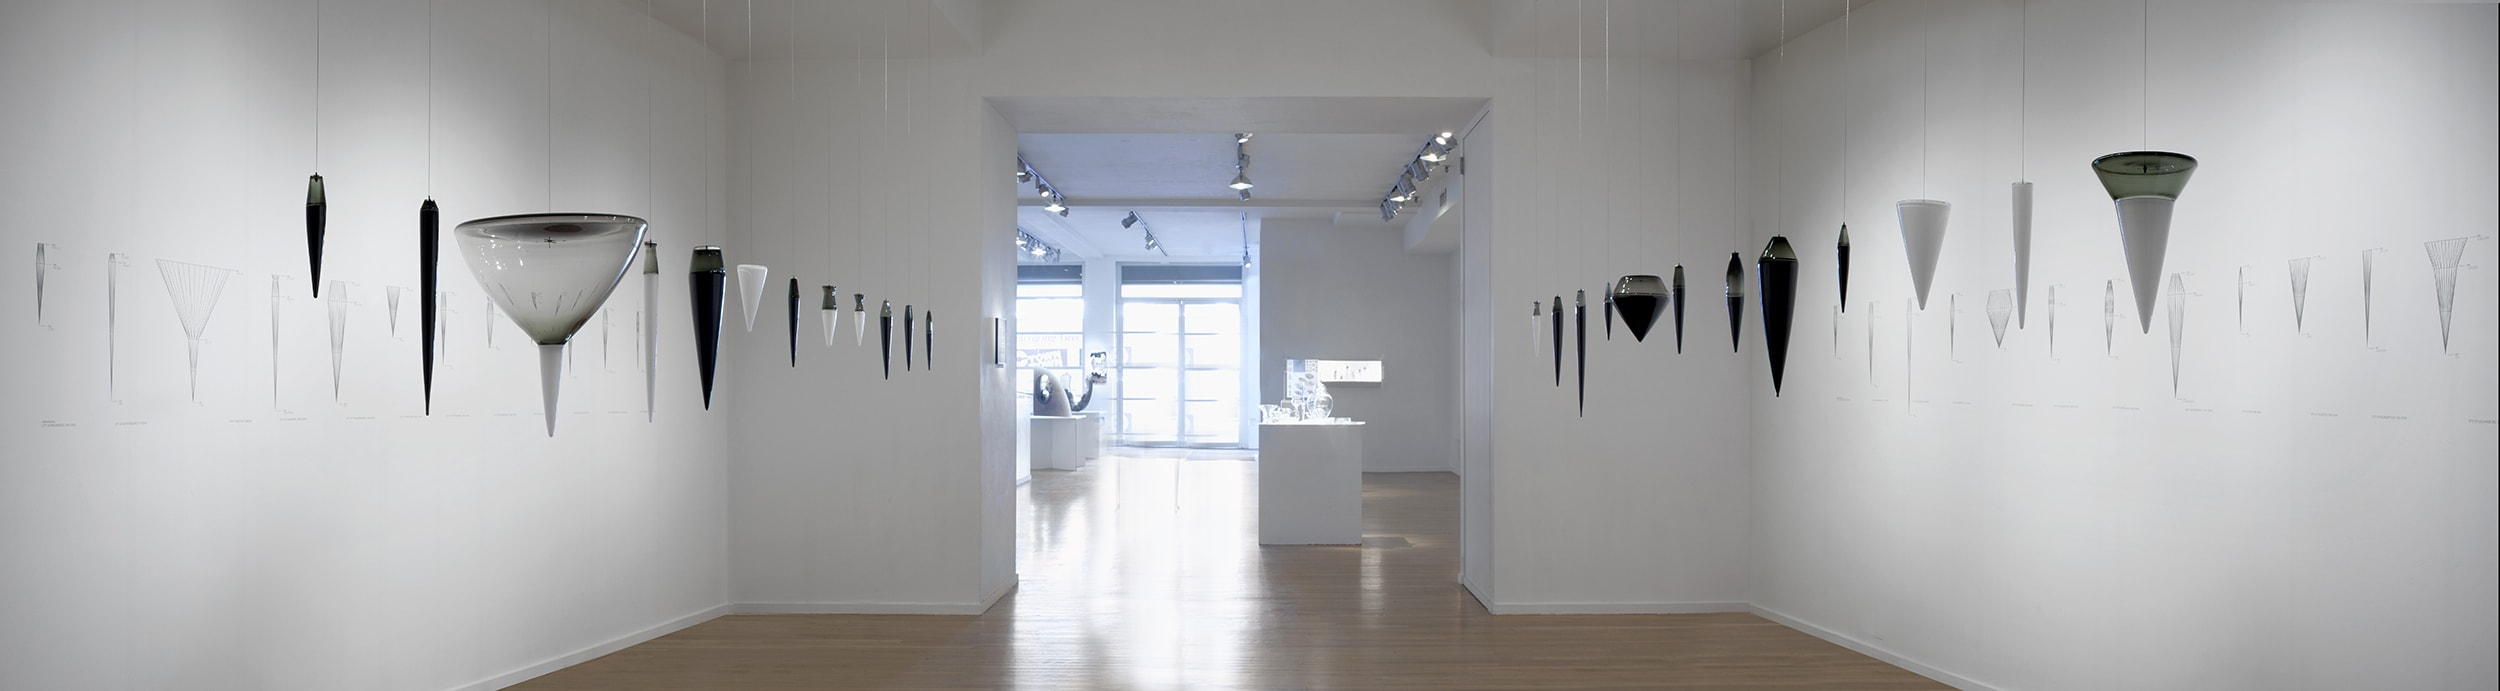 Cities: Departure and Deviation (panoramic installation view)